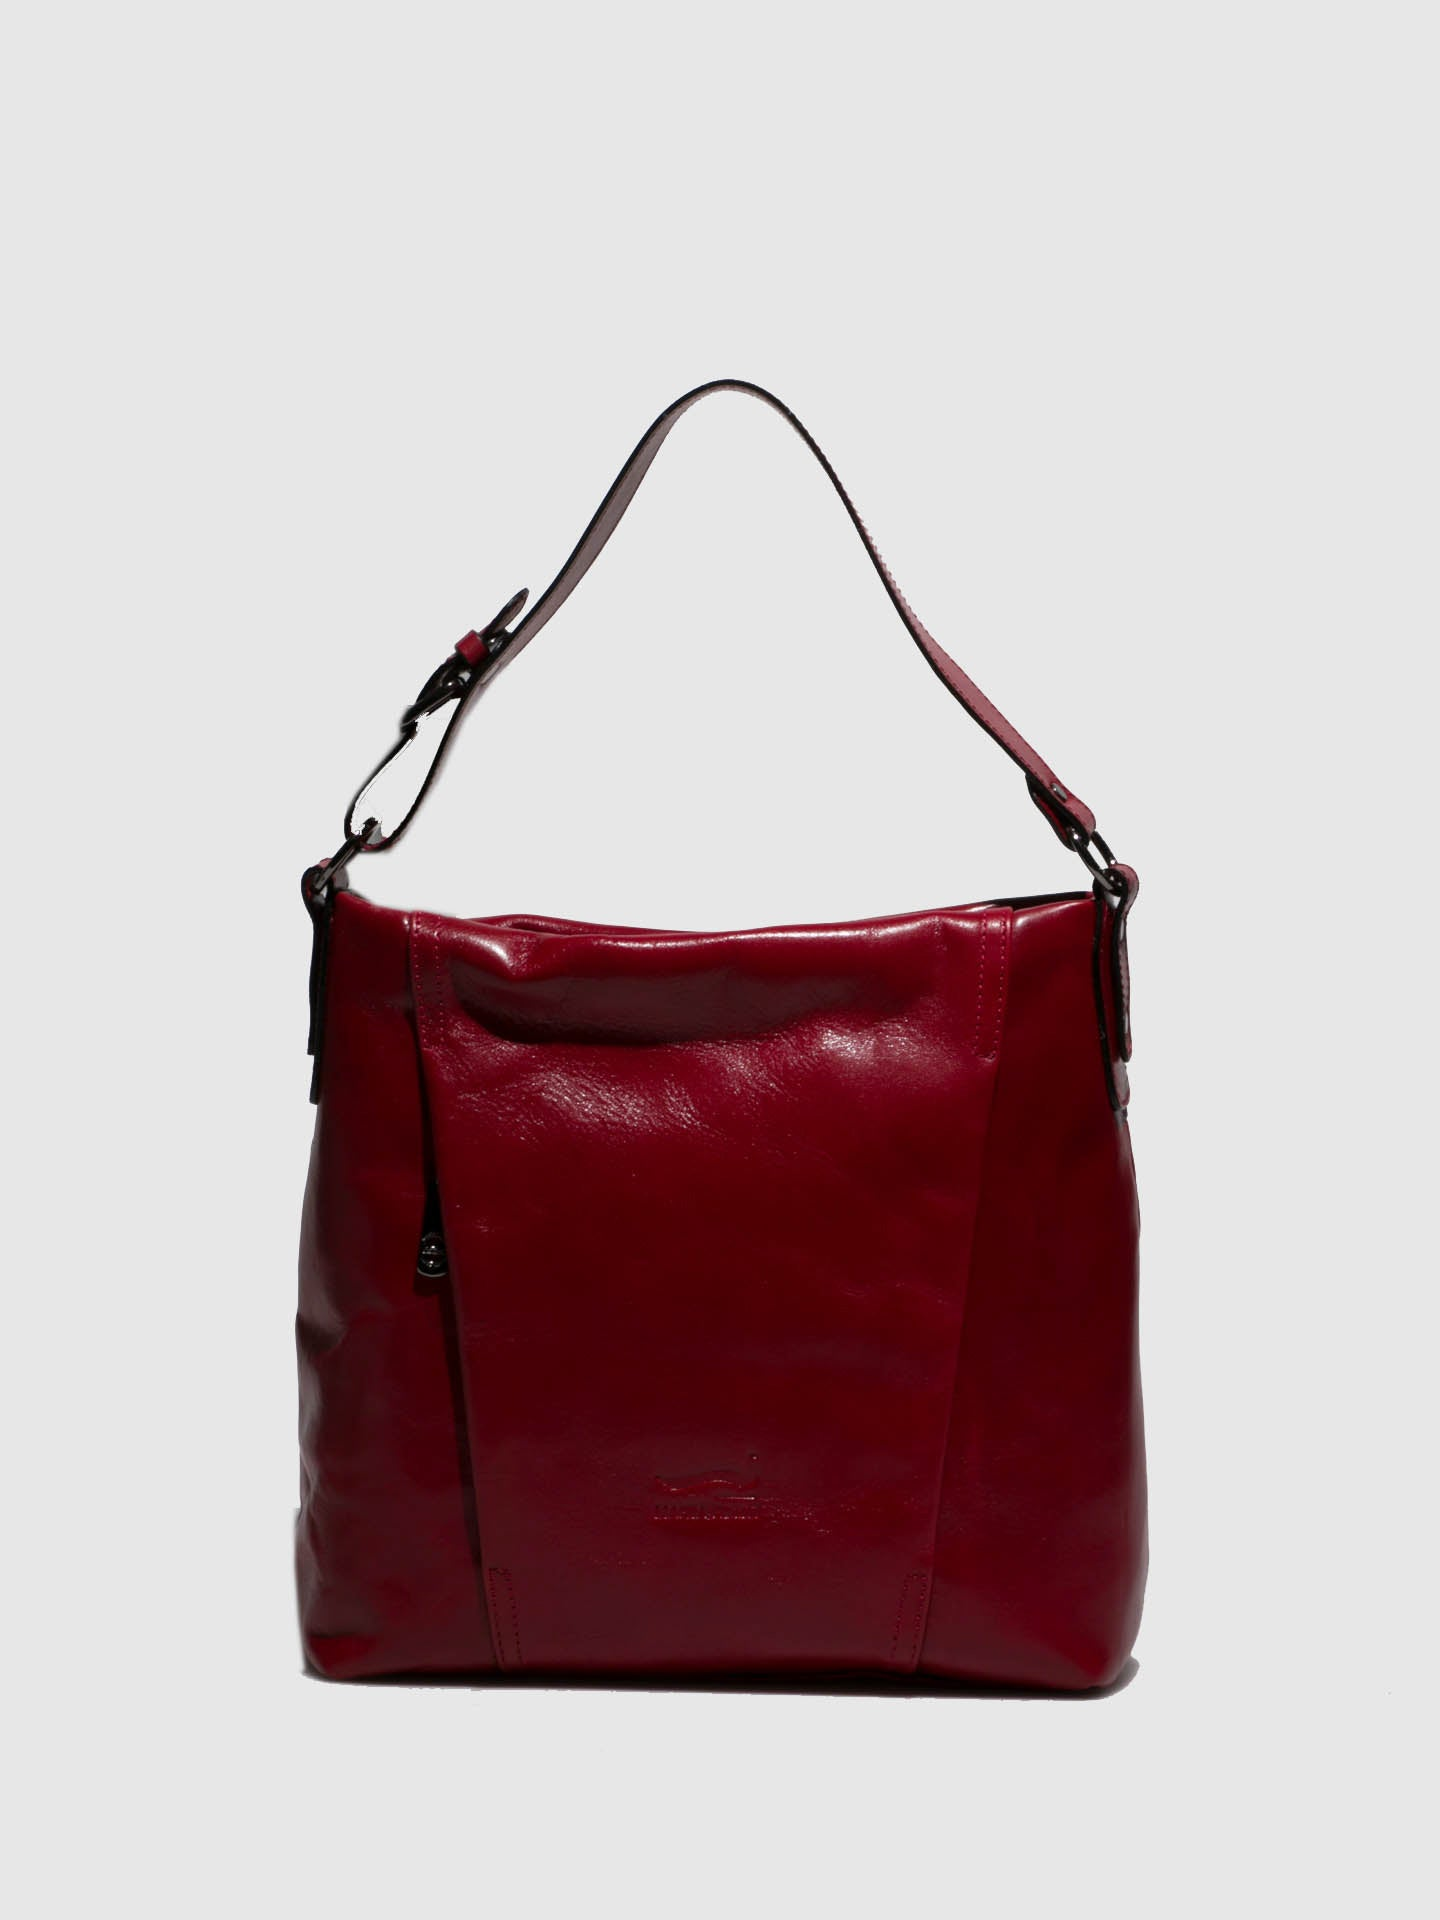 Marta Ponti Red Leather Handbag